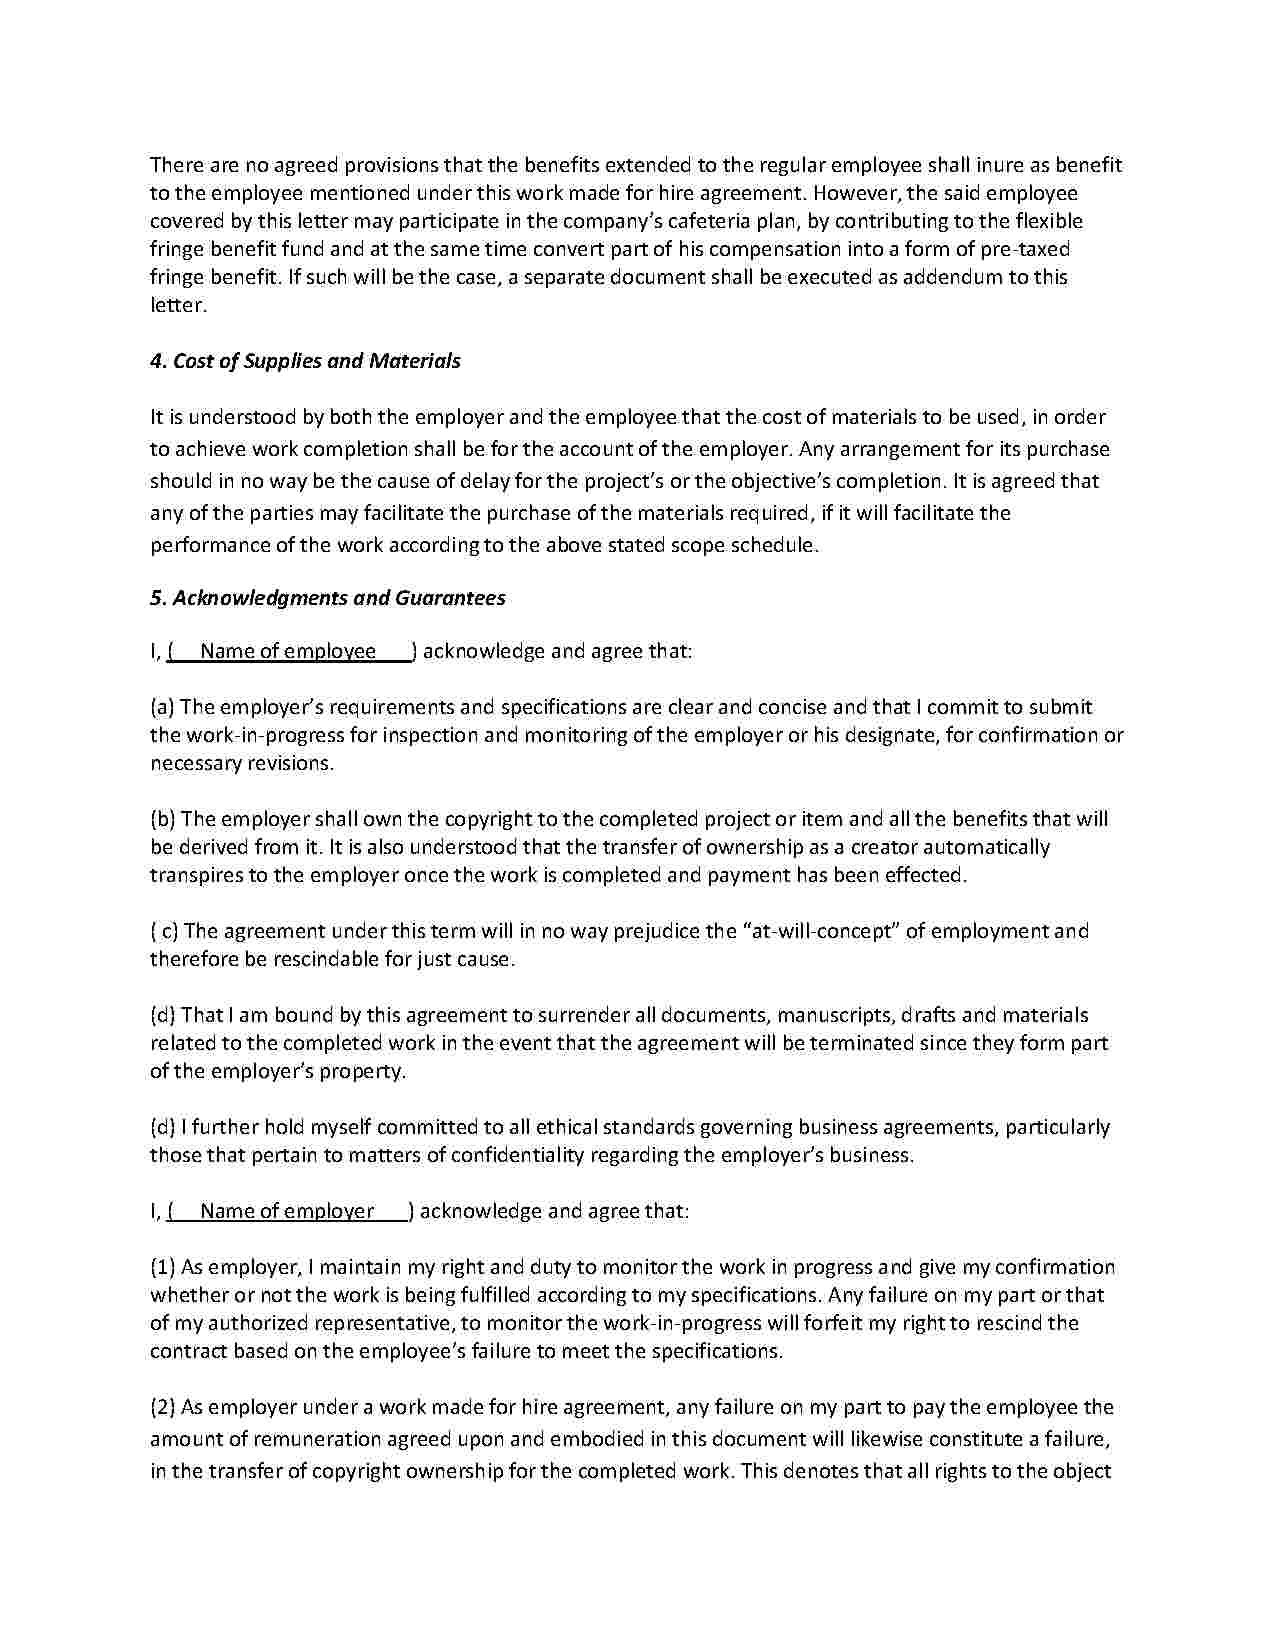 Work For Hire Agreement  Templates Hunter With Work Made For Hire Agreement Template